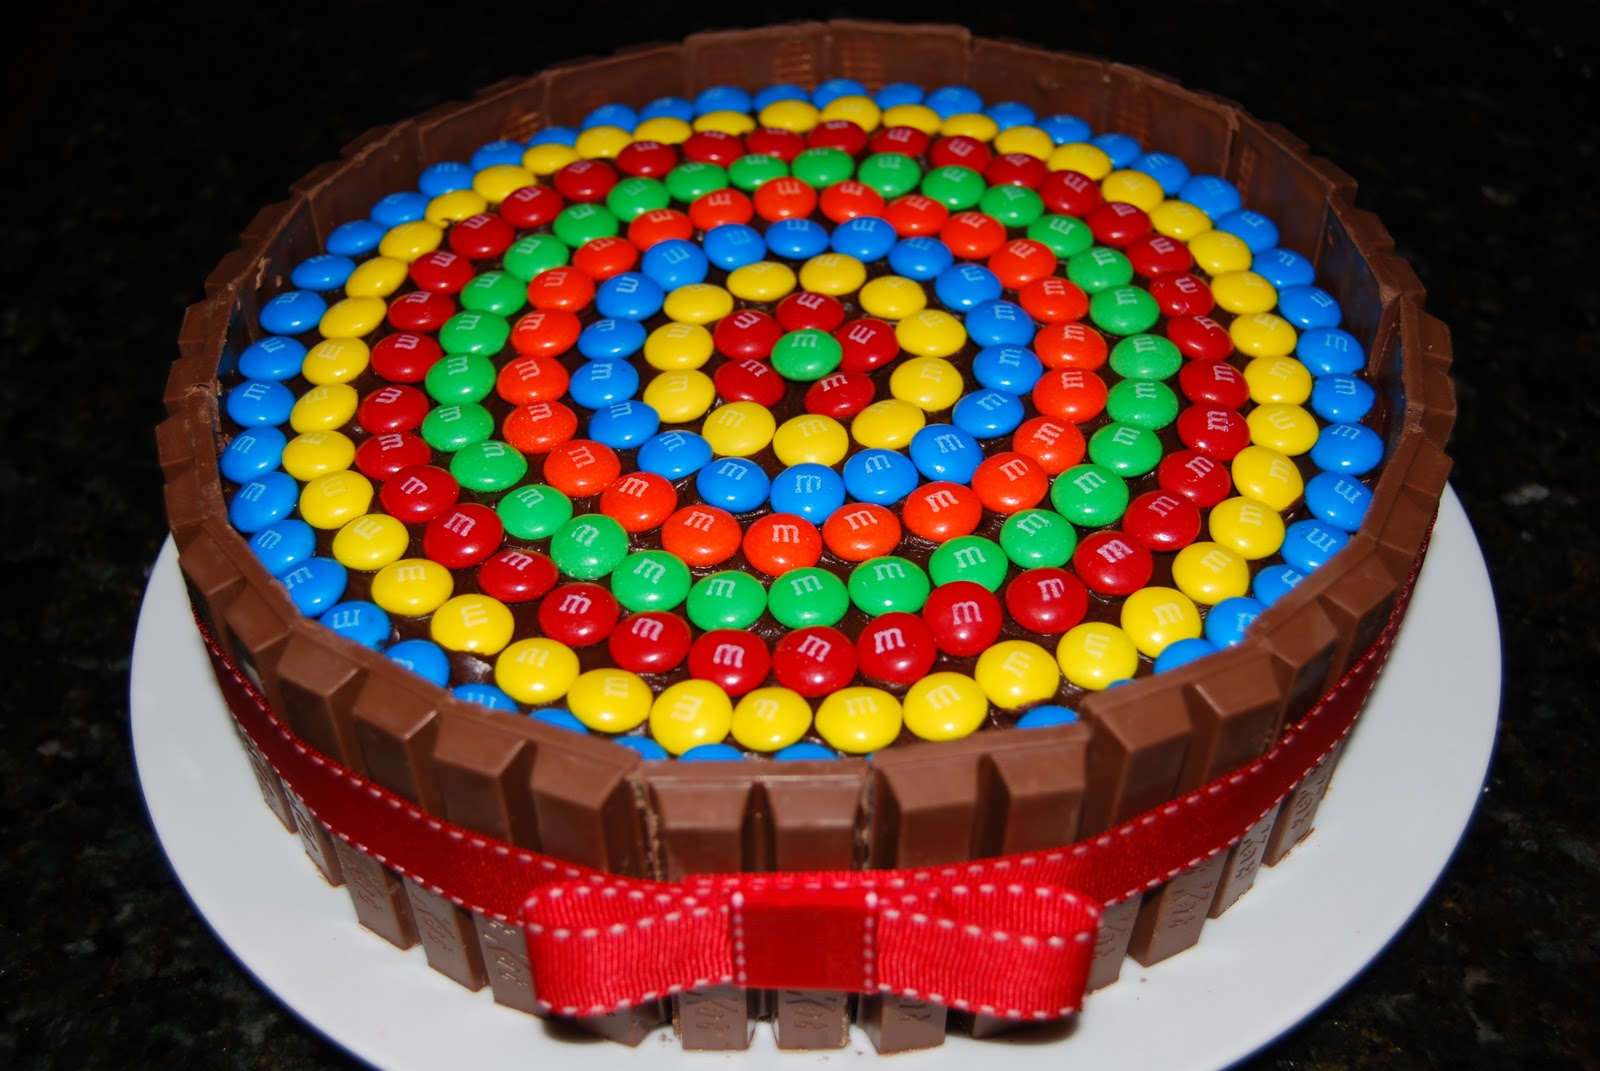 9 Top Cakes In The World Photo Kit Kat Cake Worlds Best